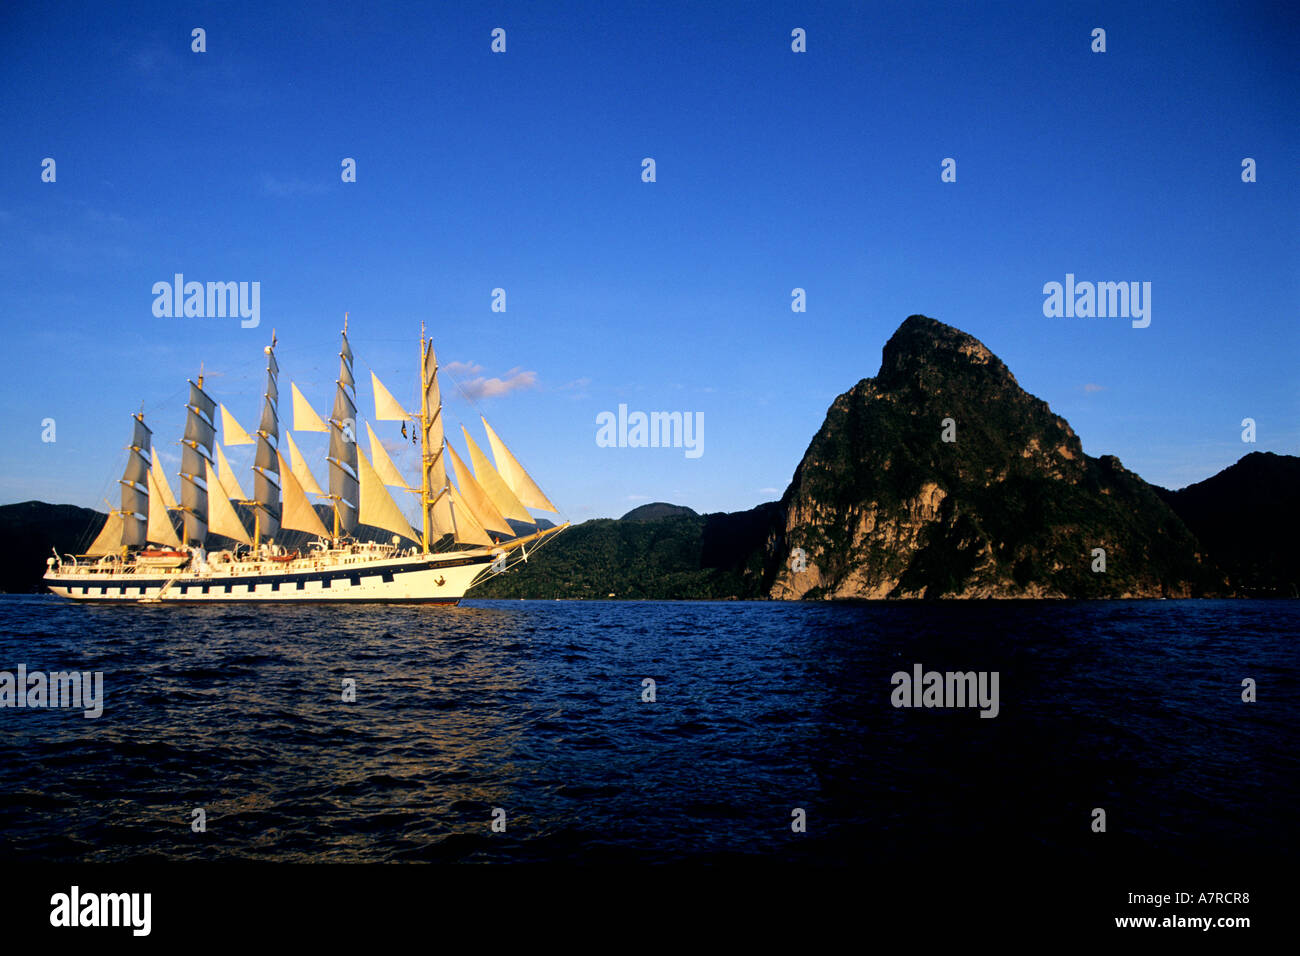 St Lucia Caribbean Sea: Caribbean Sea, St Lucia Island, The Five Masted Ship SPV